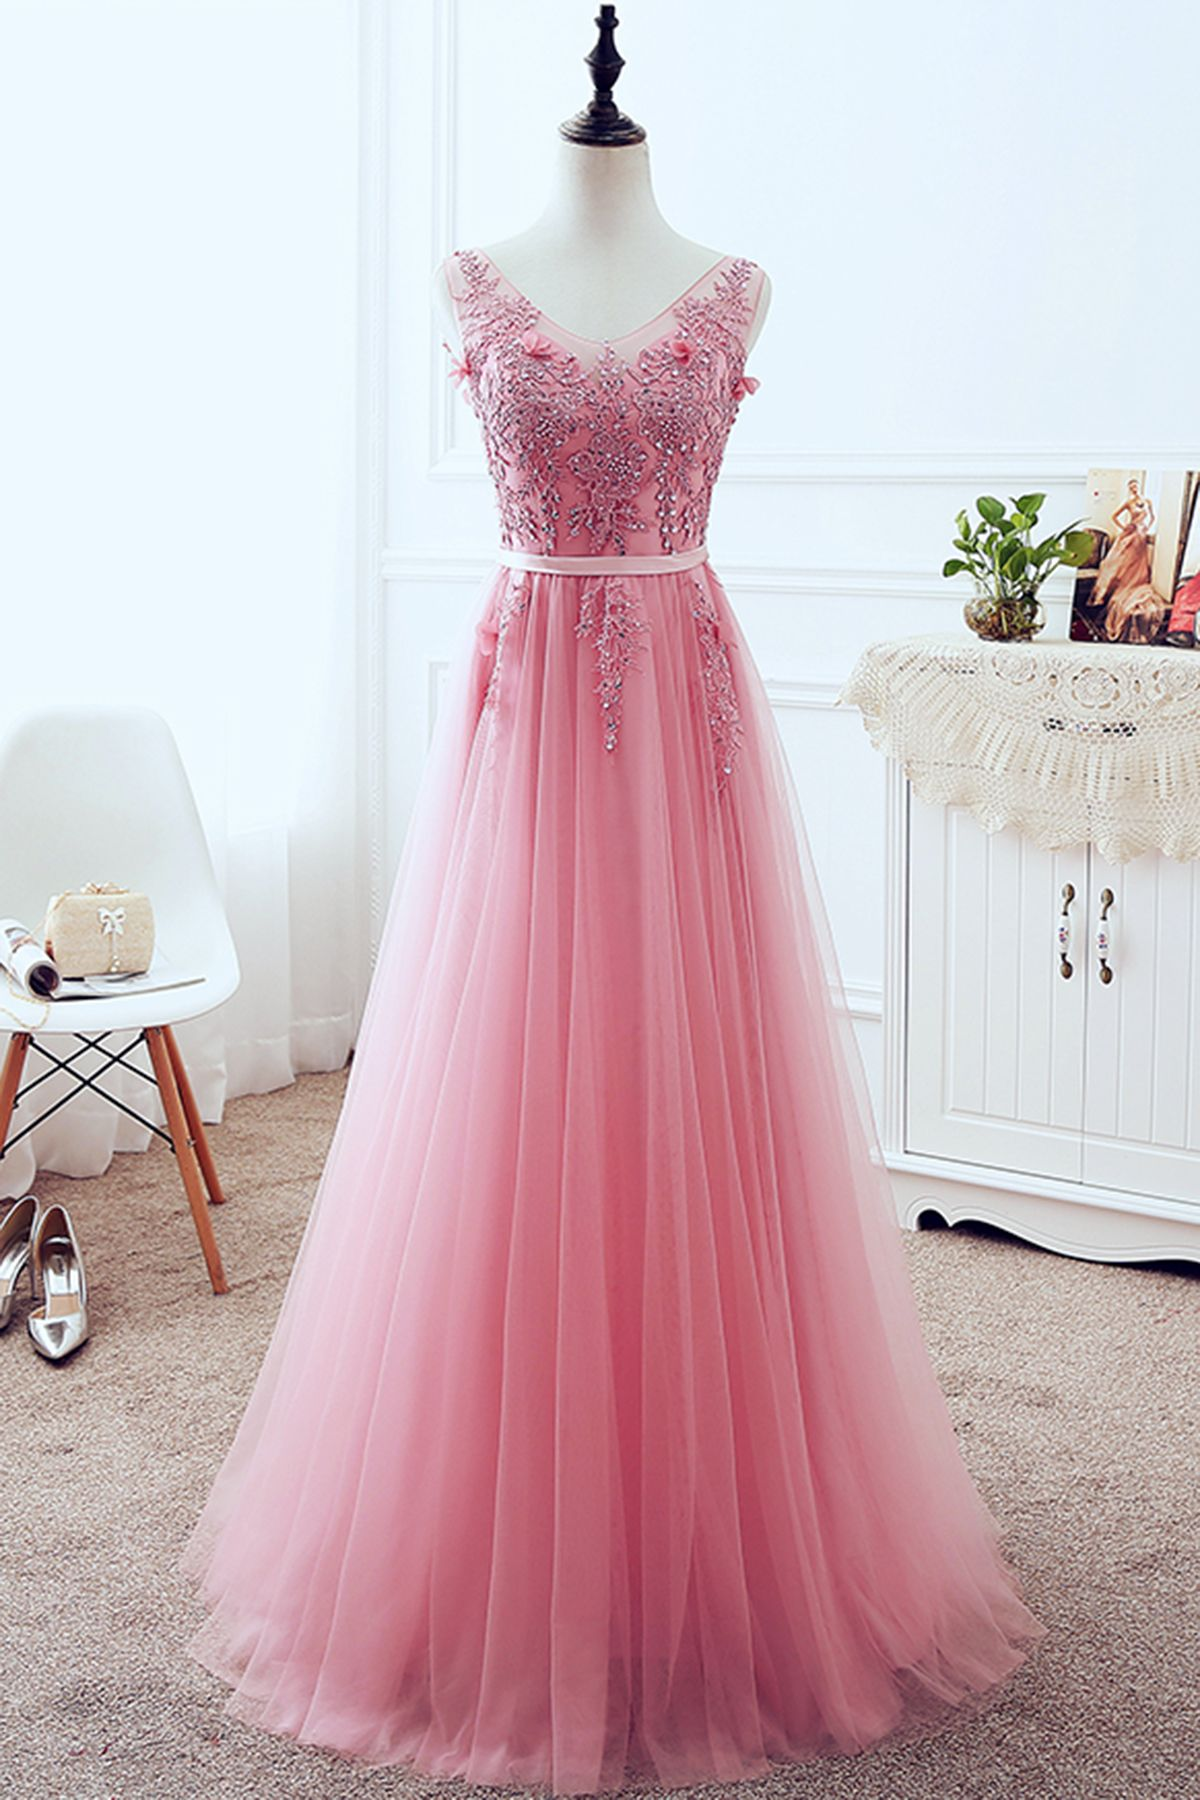 Charming V Neck Appliques Beaded Homecoming Dress, Elegant ...